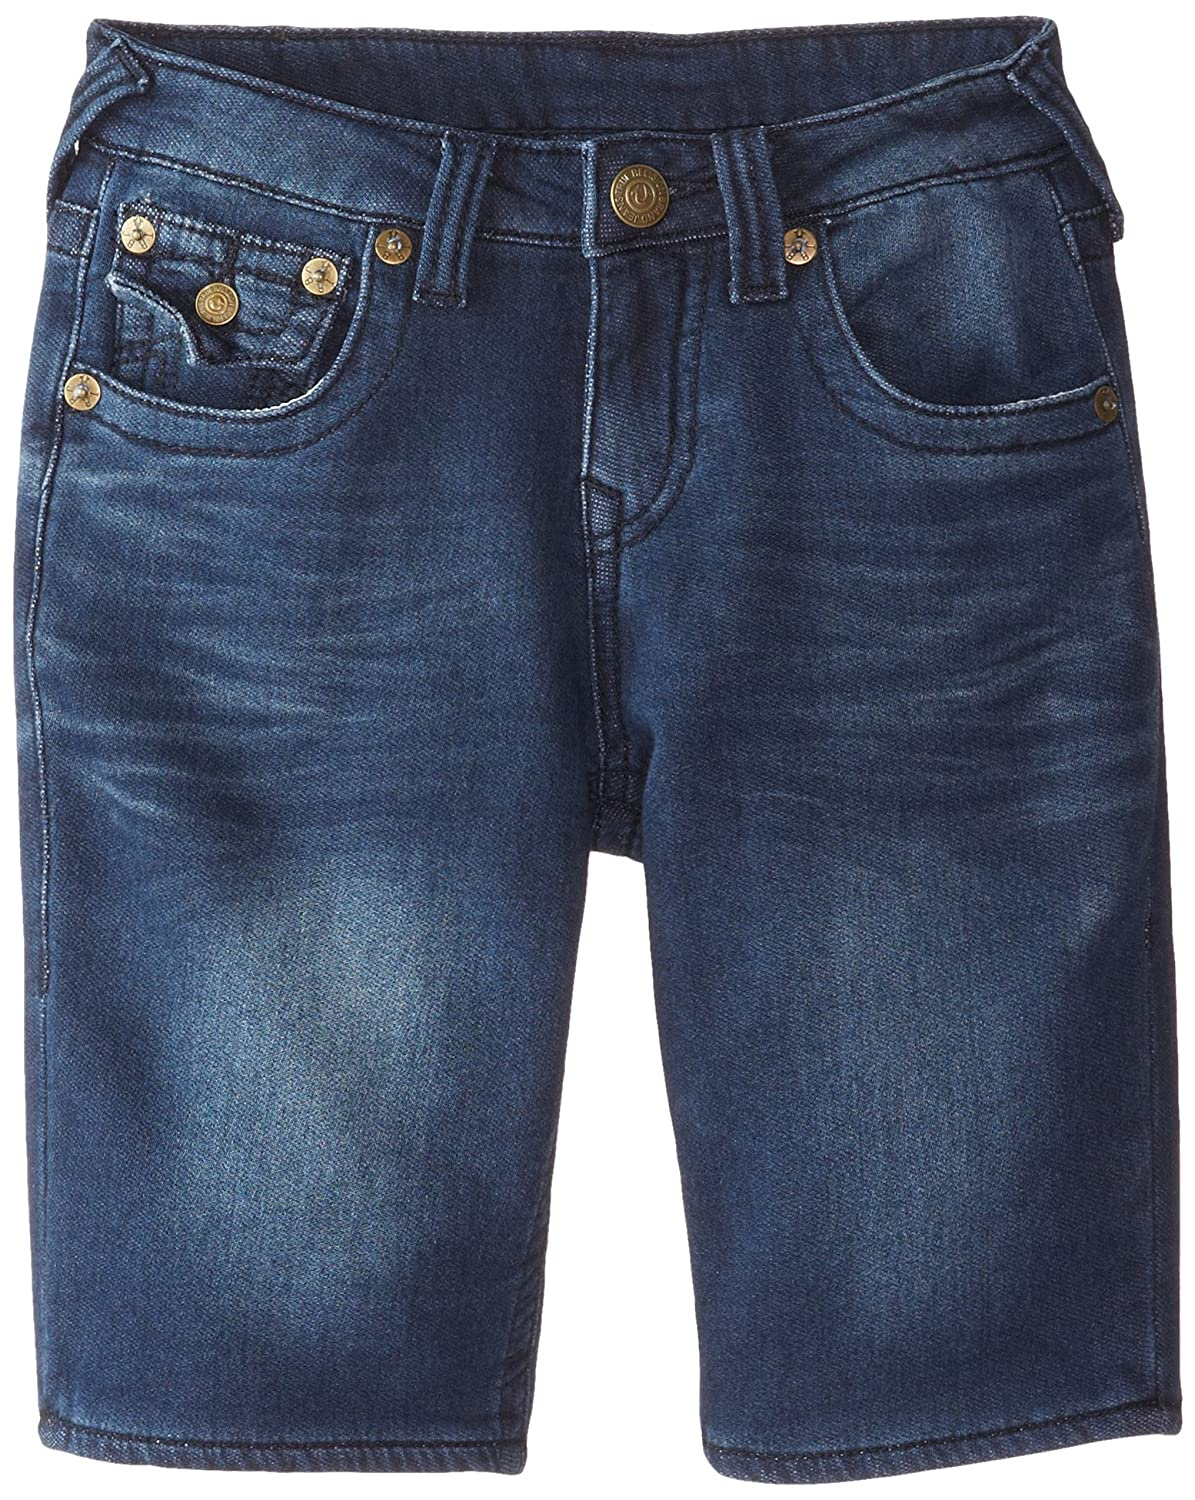 True Religion Big Boys' Geno Indigo French Terry 5 Pocket Short подвесная люстра 1406 16 8 4 530 xl 180 2d g bohemia ivele crystal хрустальная люстра